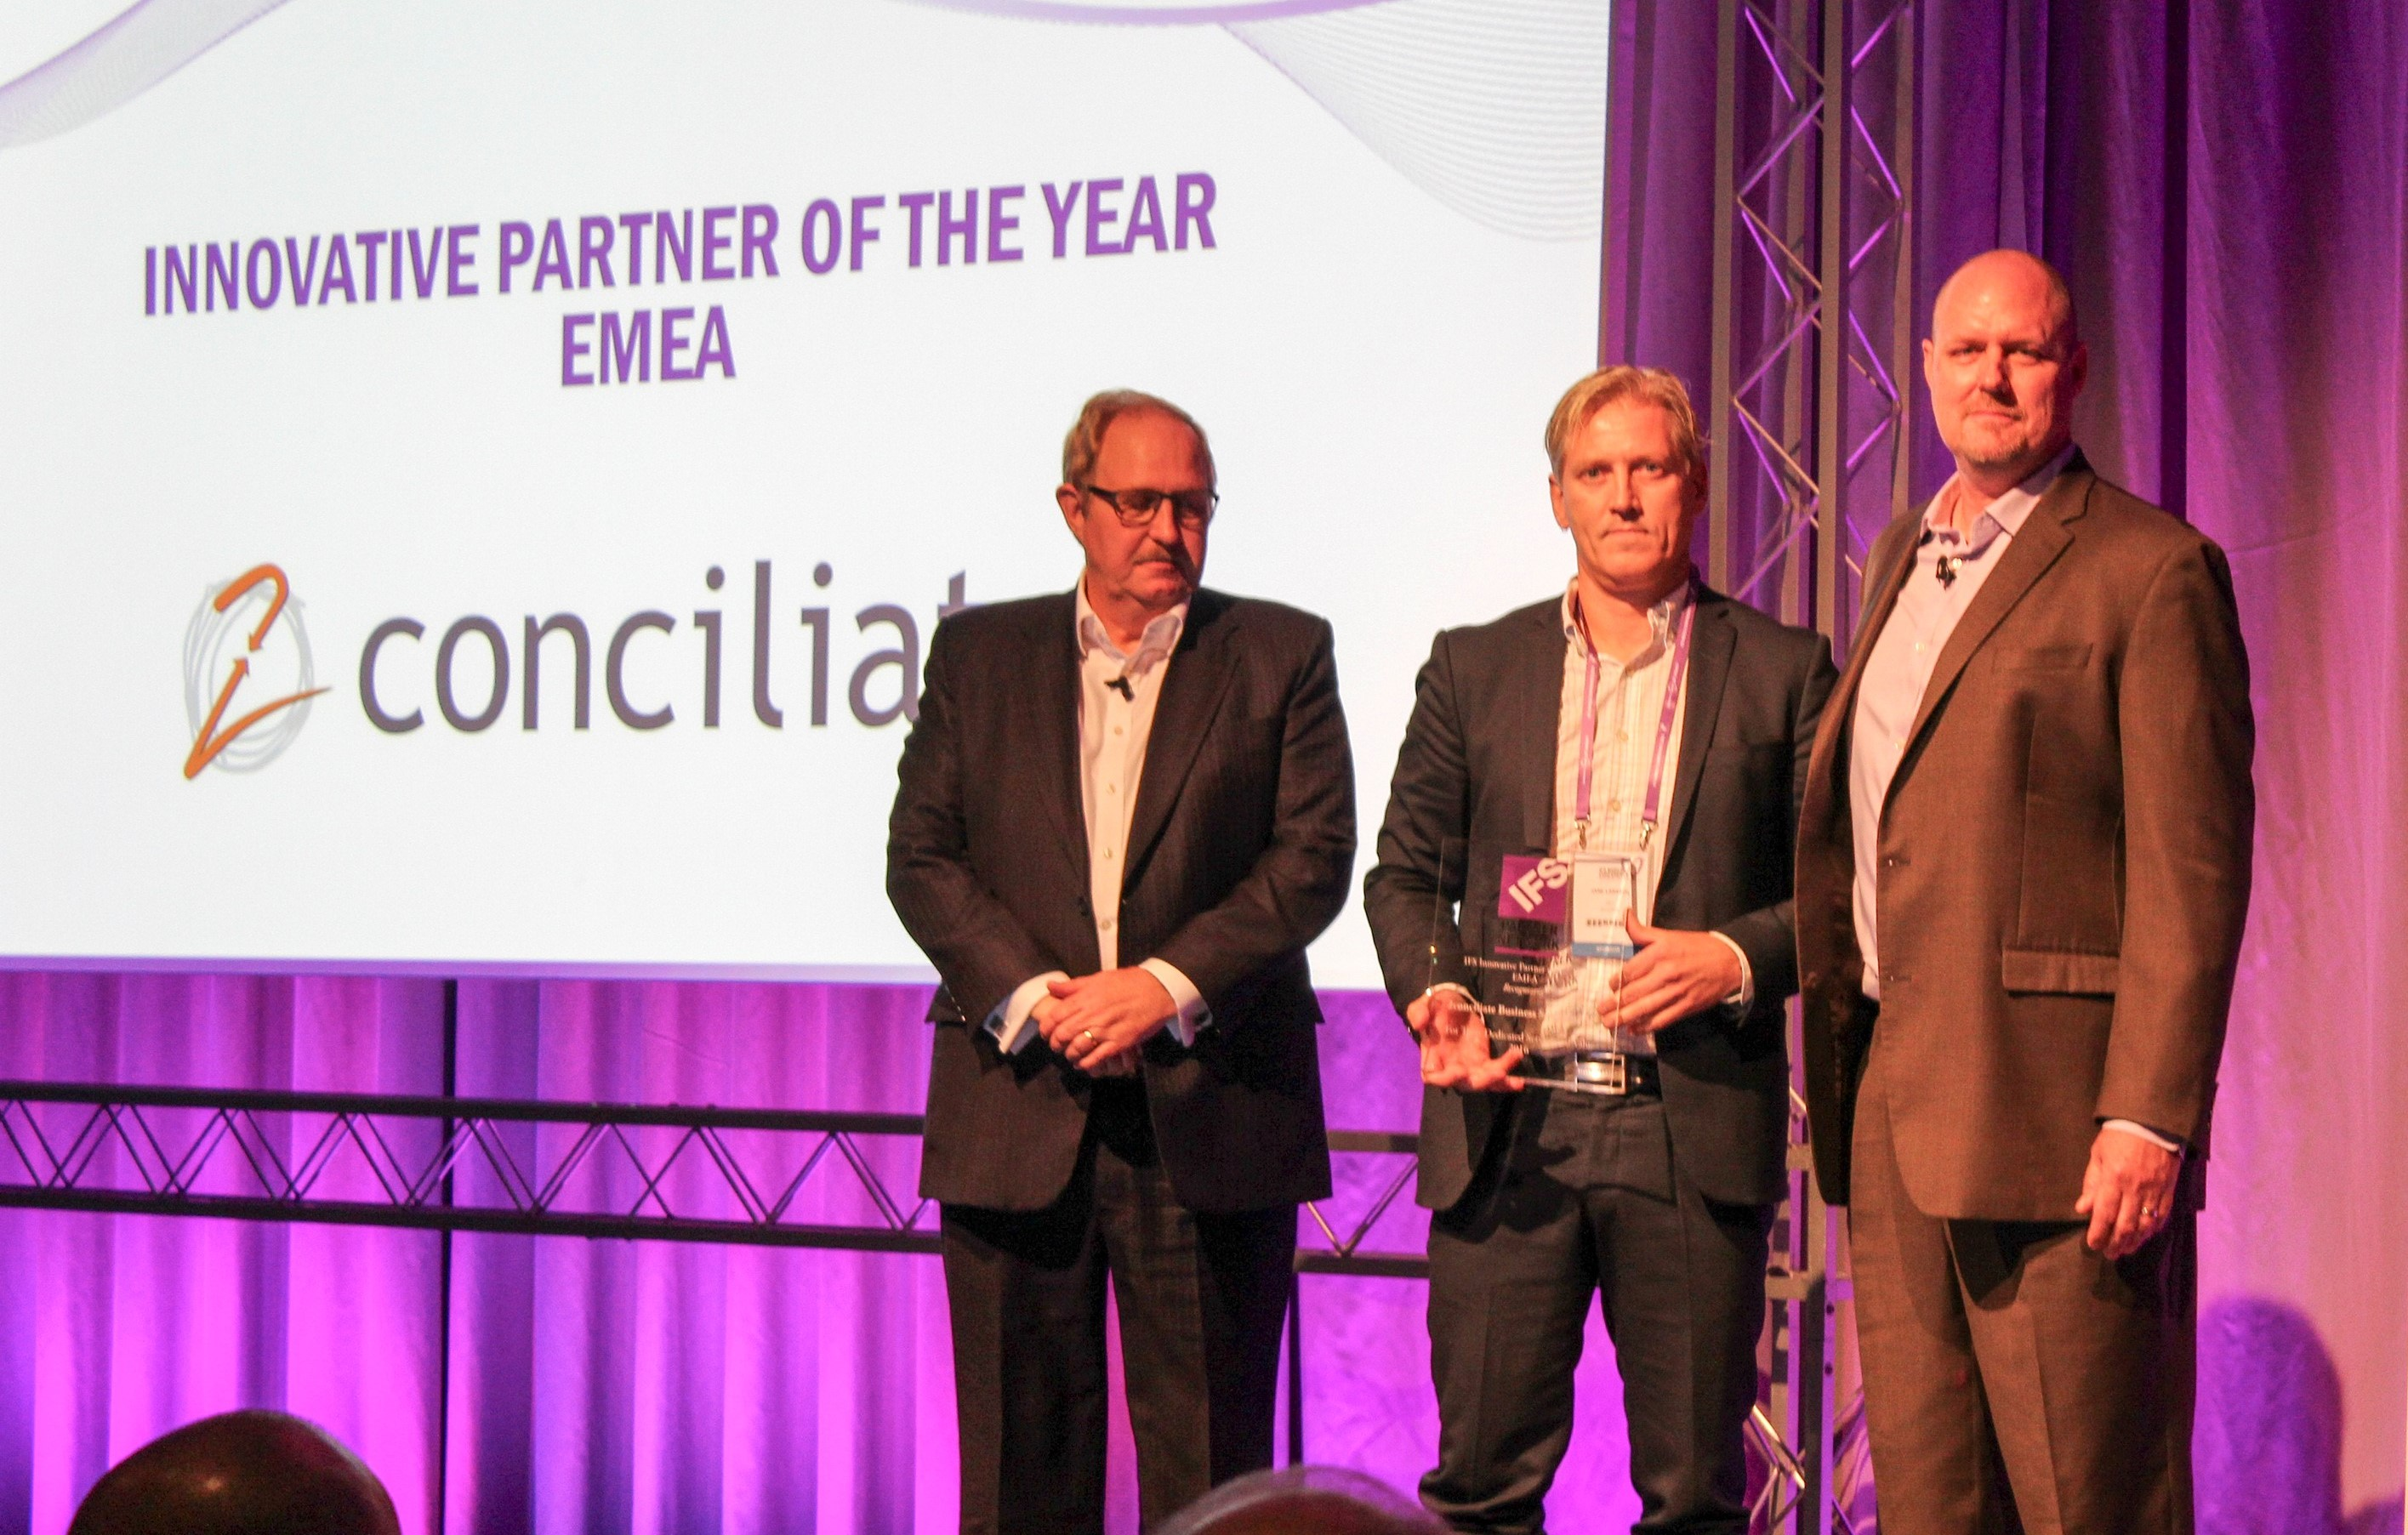 2conciliate innovative partner 2016